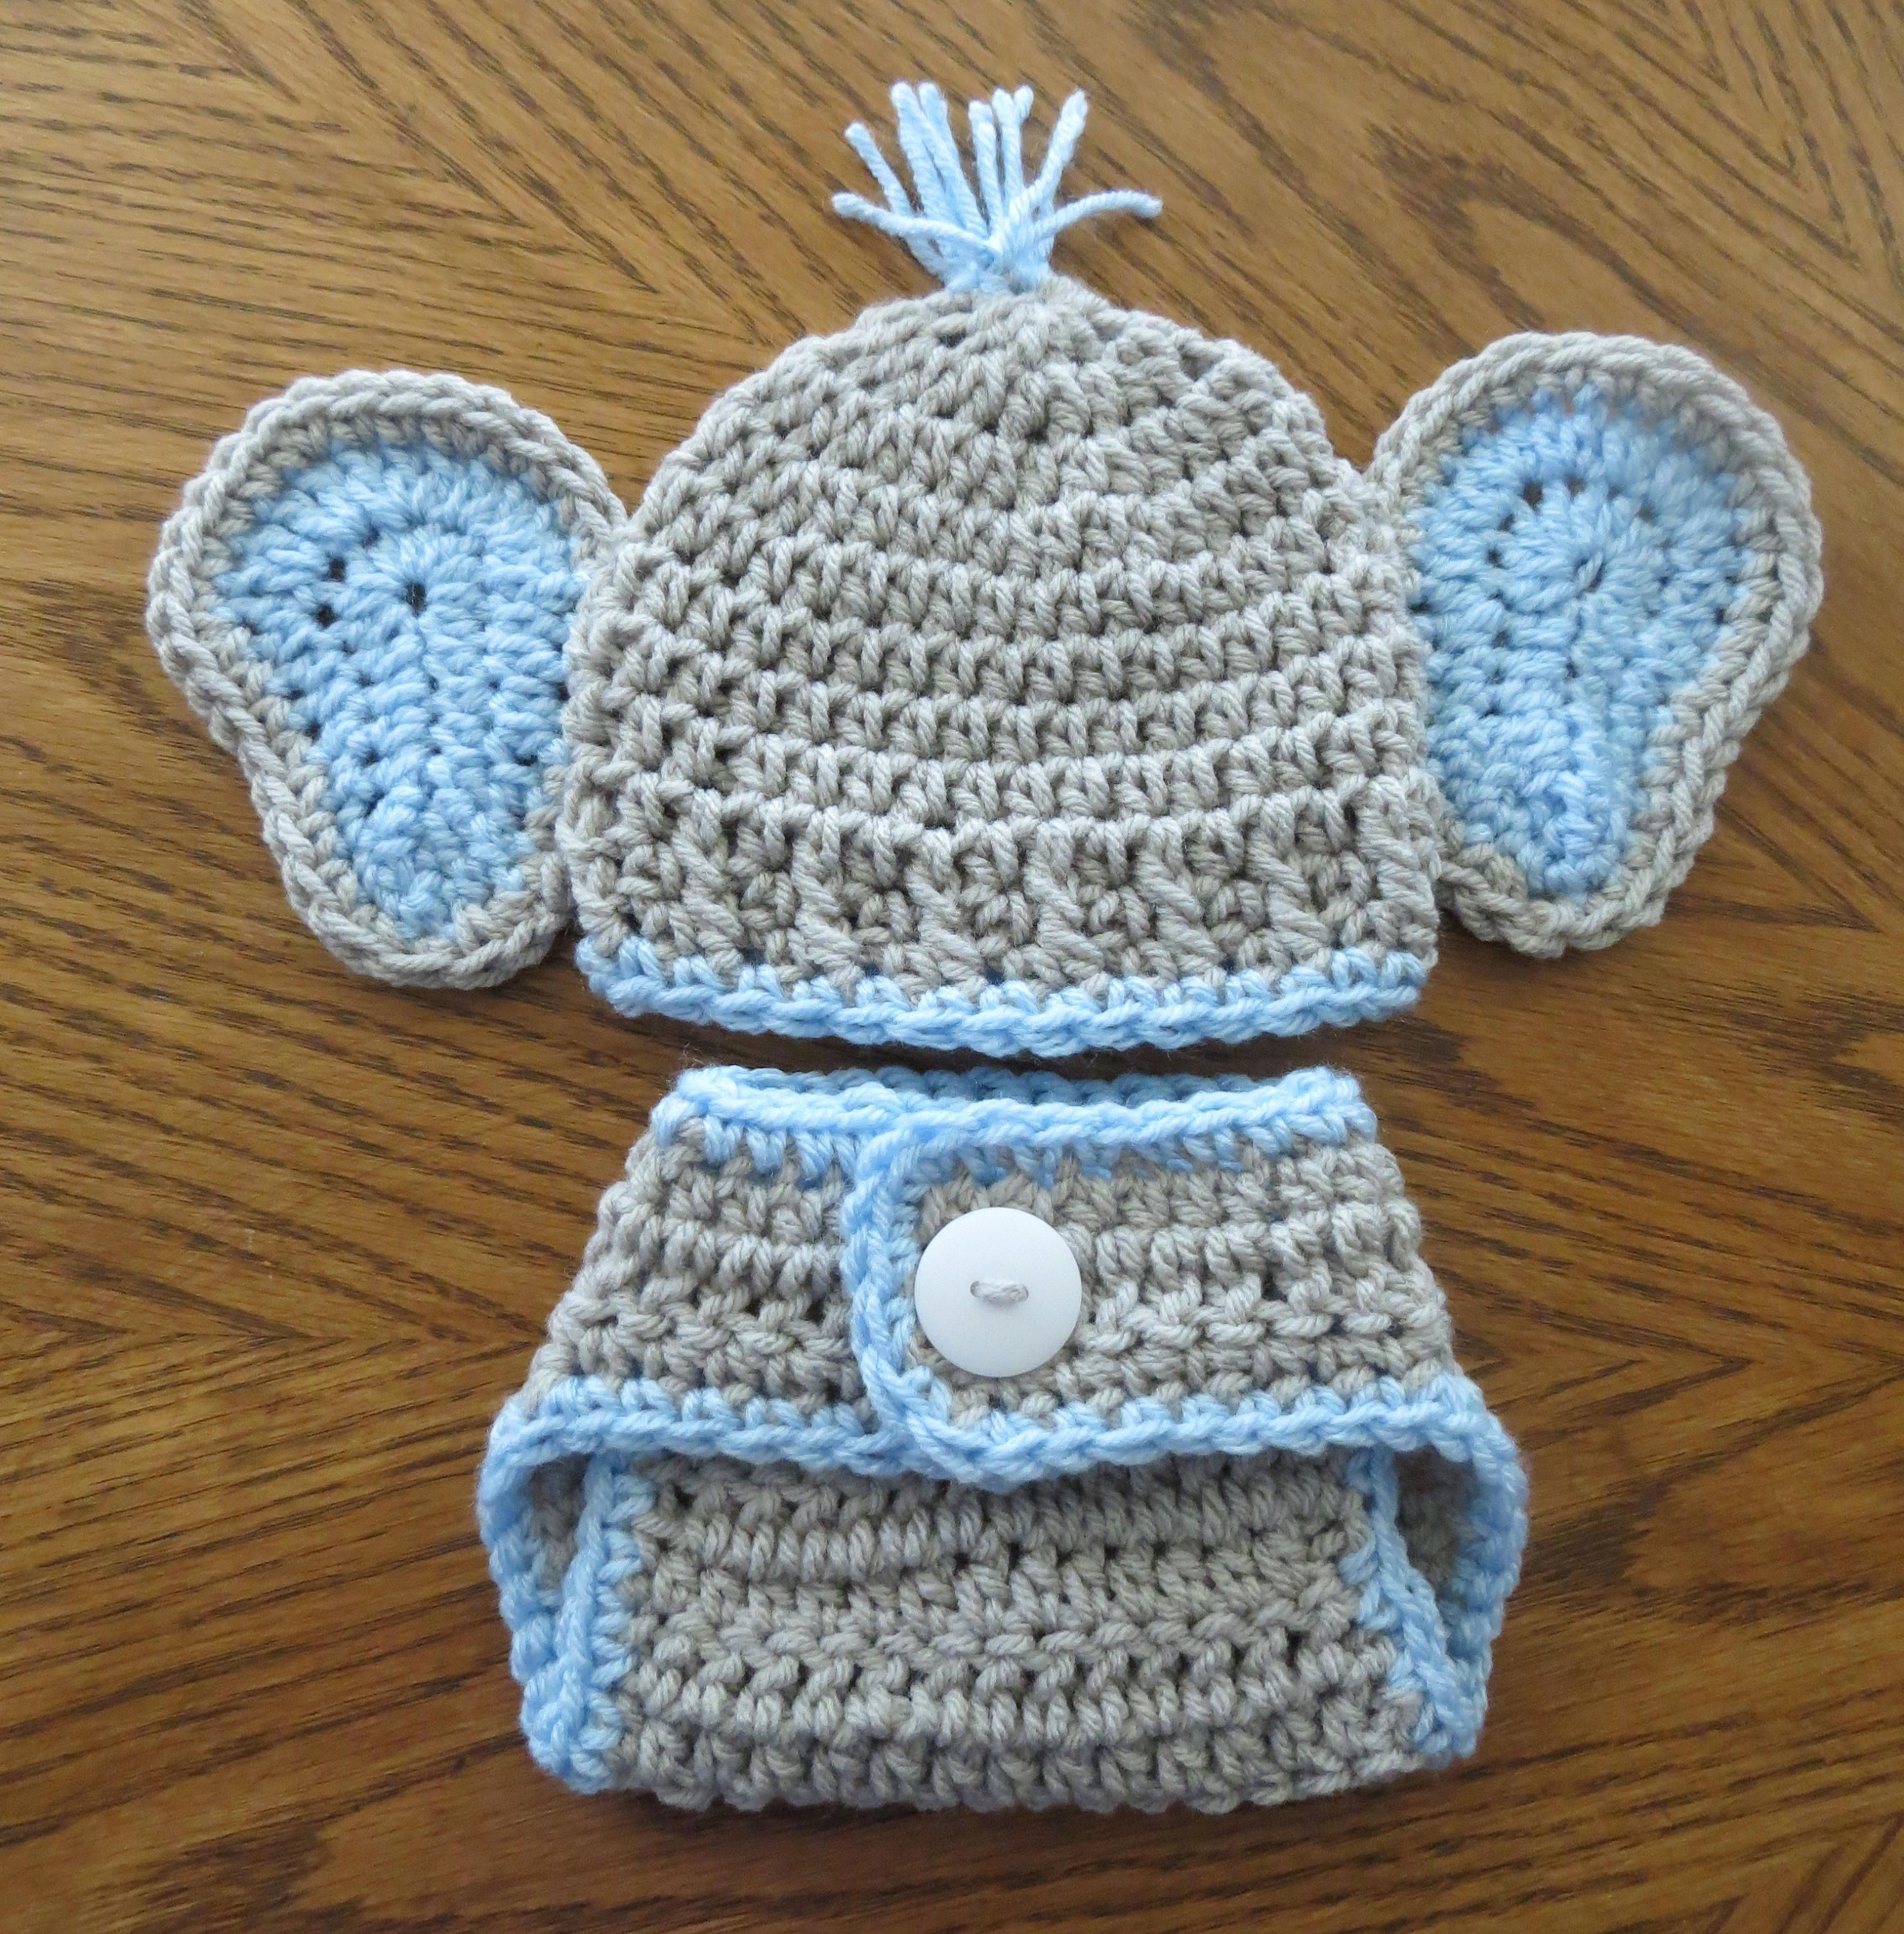 Crochet Baby Hats Free pattern woolly hat for LuiLuh elephant and ... | 3000x2954